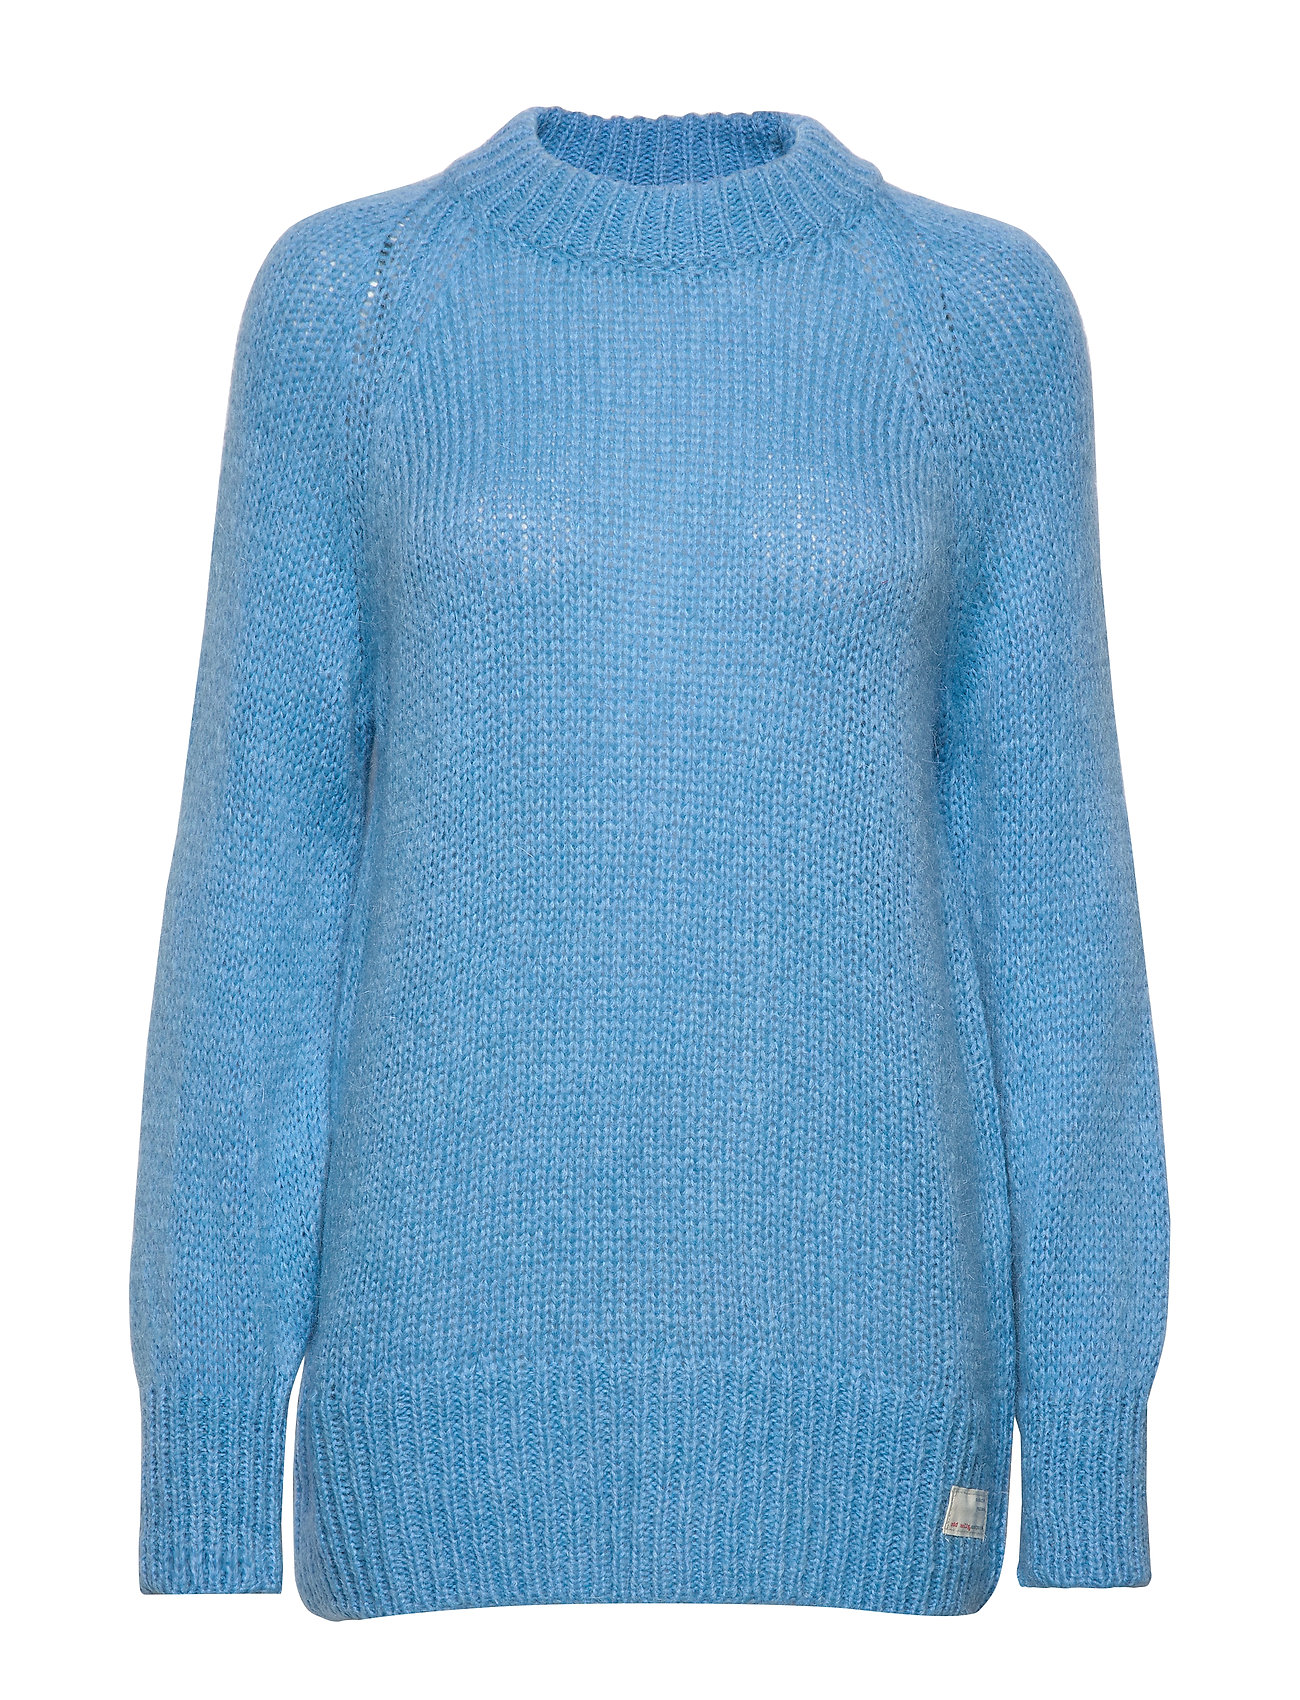 ODD MOLLY Significant Other Sweater - BRIGHT BLUE